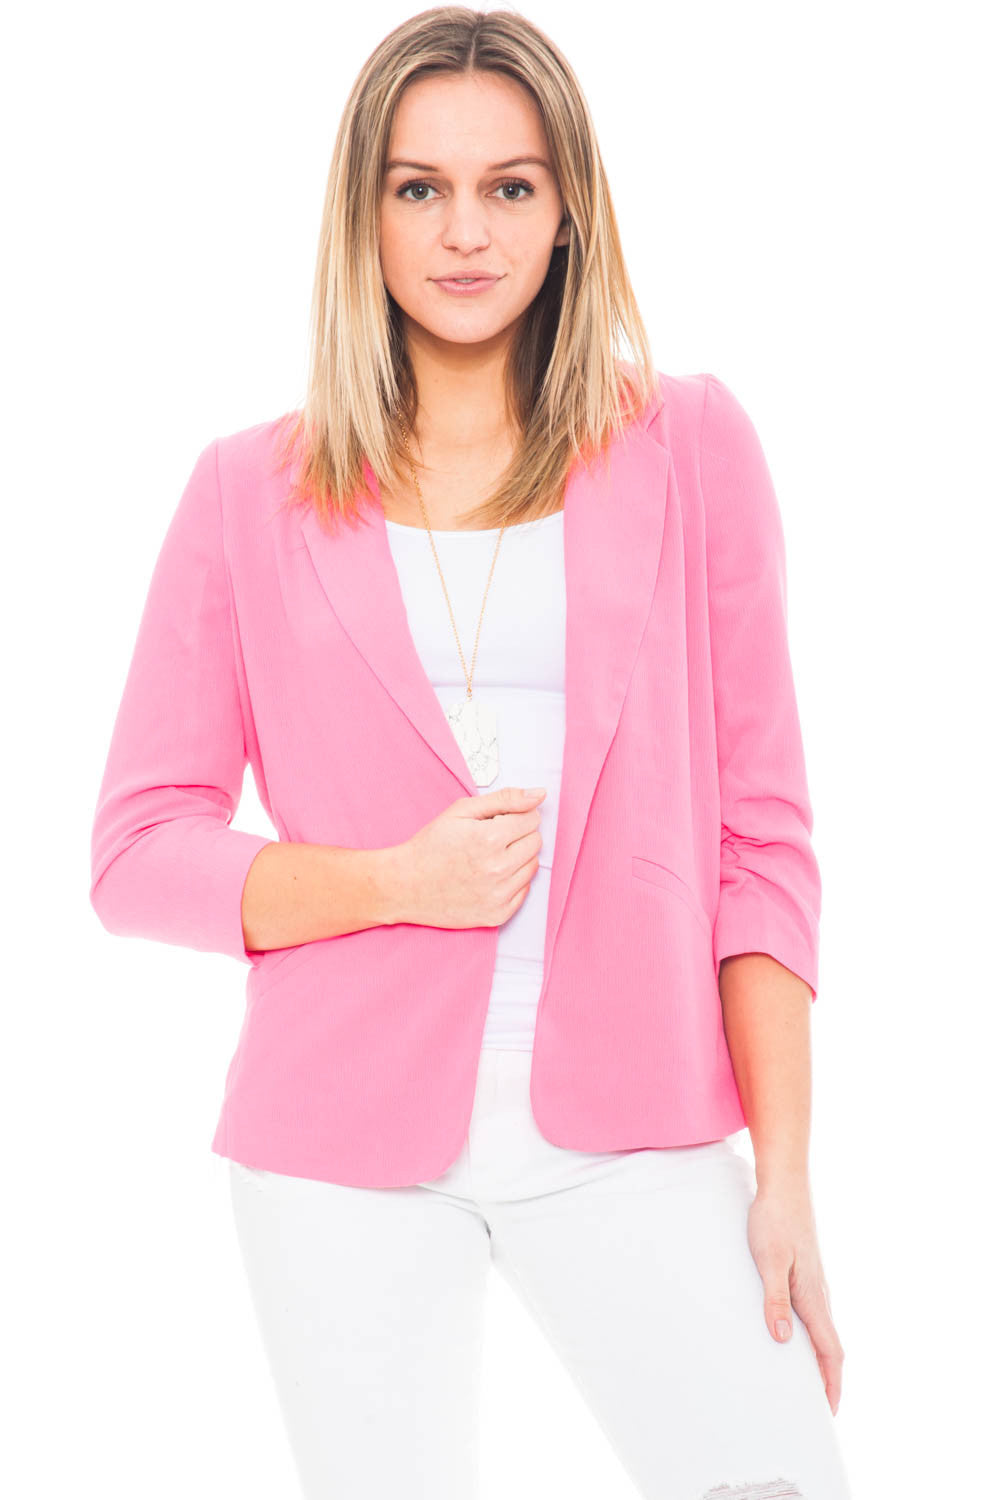 Jacket - 3/4 Sleeve Crepe Blazer with Cinched Sleeves